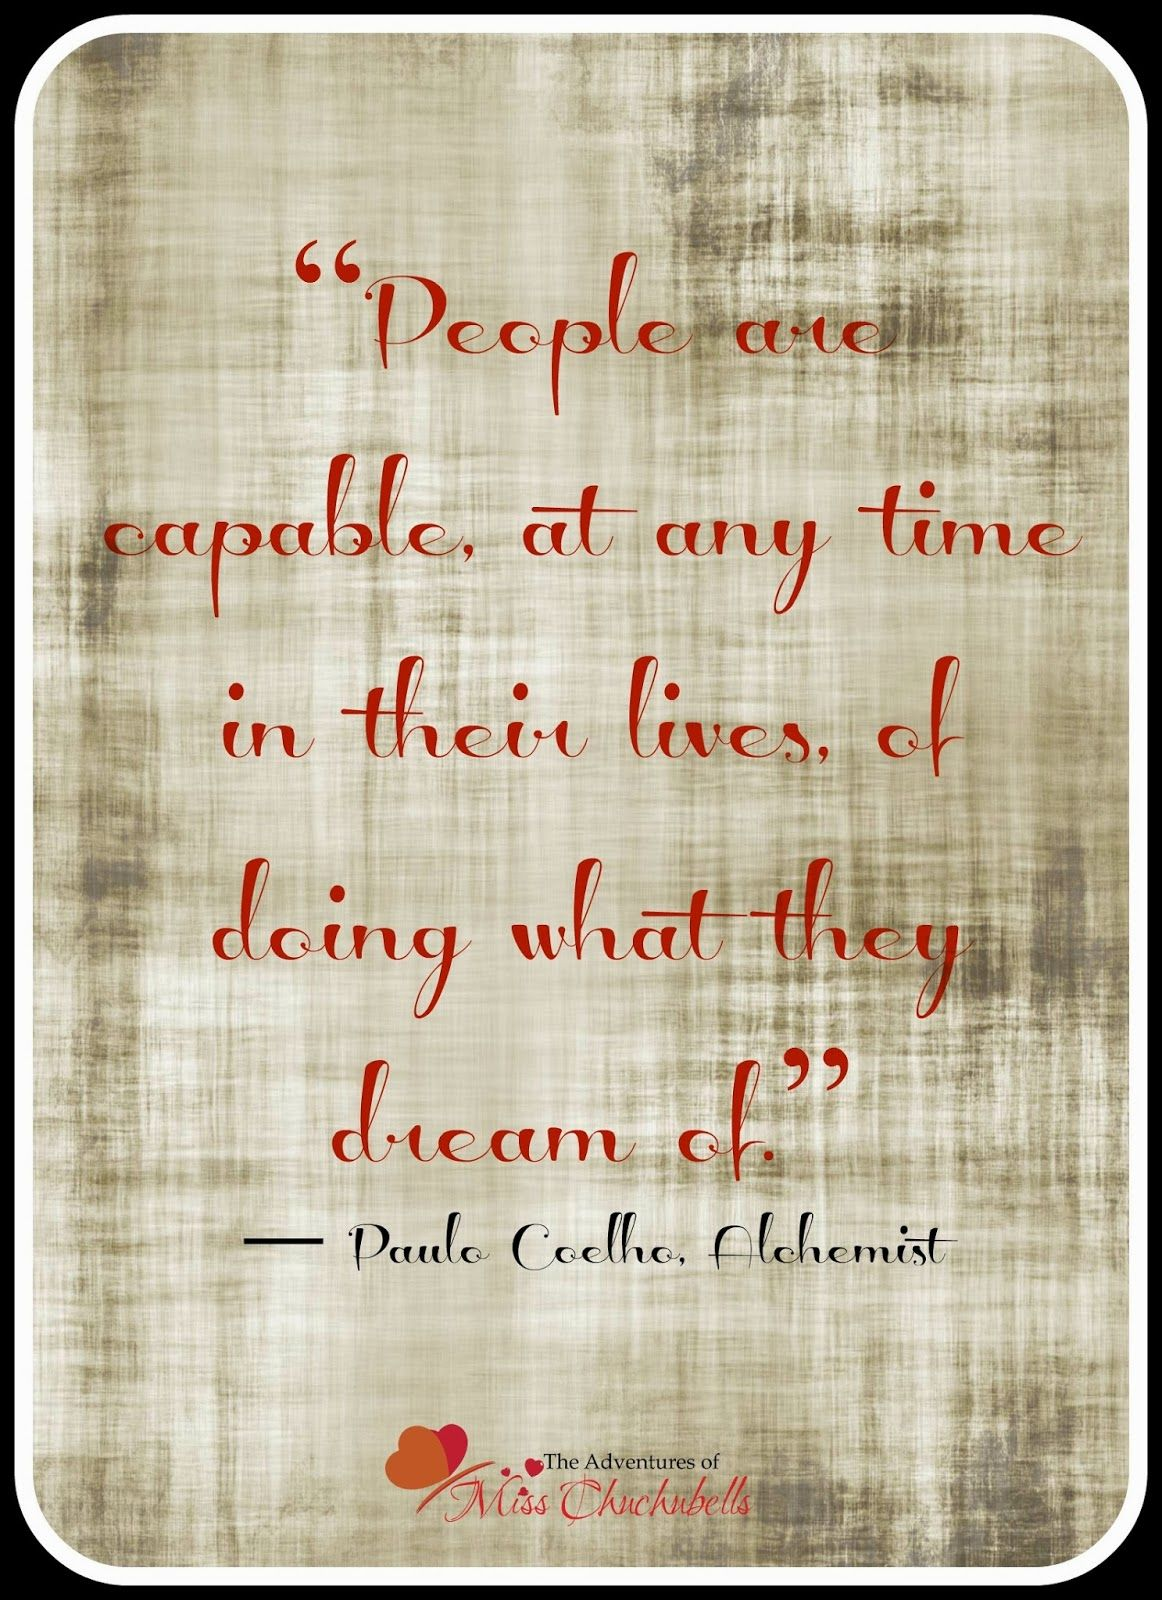 the adventures of miss chuchubells paulo coelho the alchemist the adventures of miss chuchubells paulo coelho the alchemist quotes